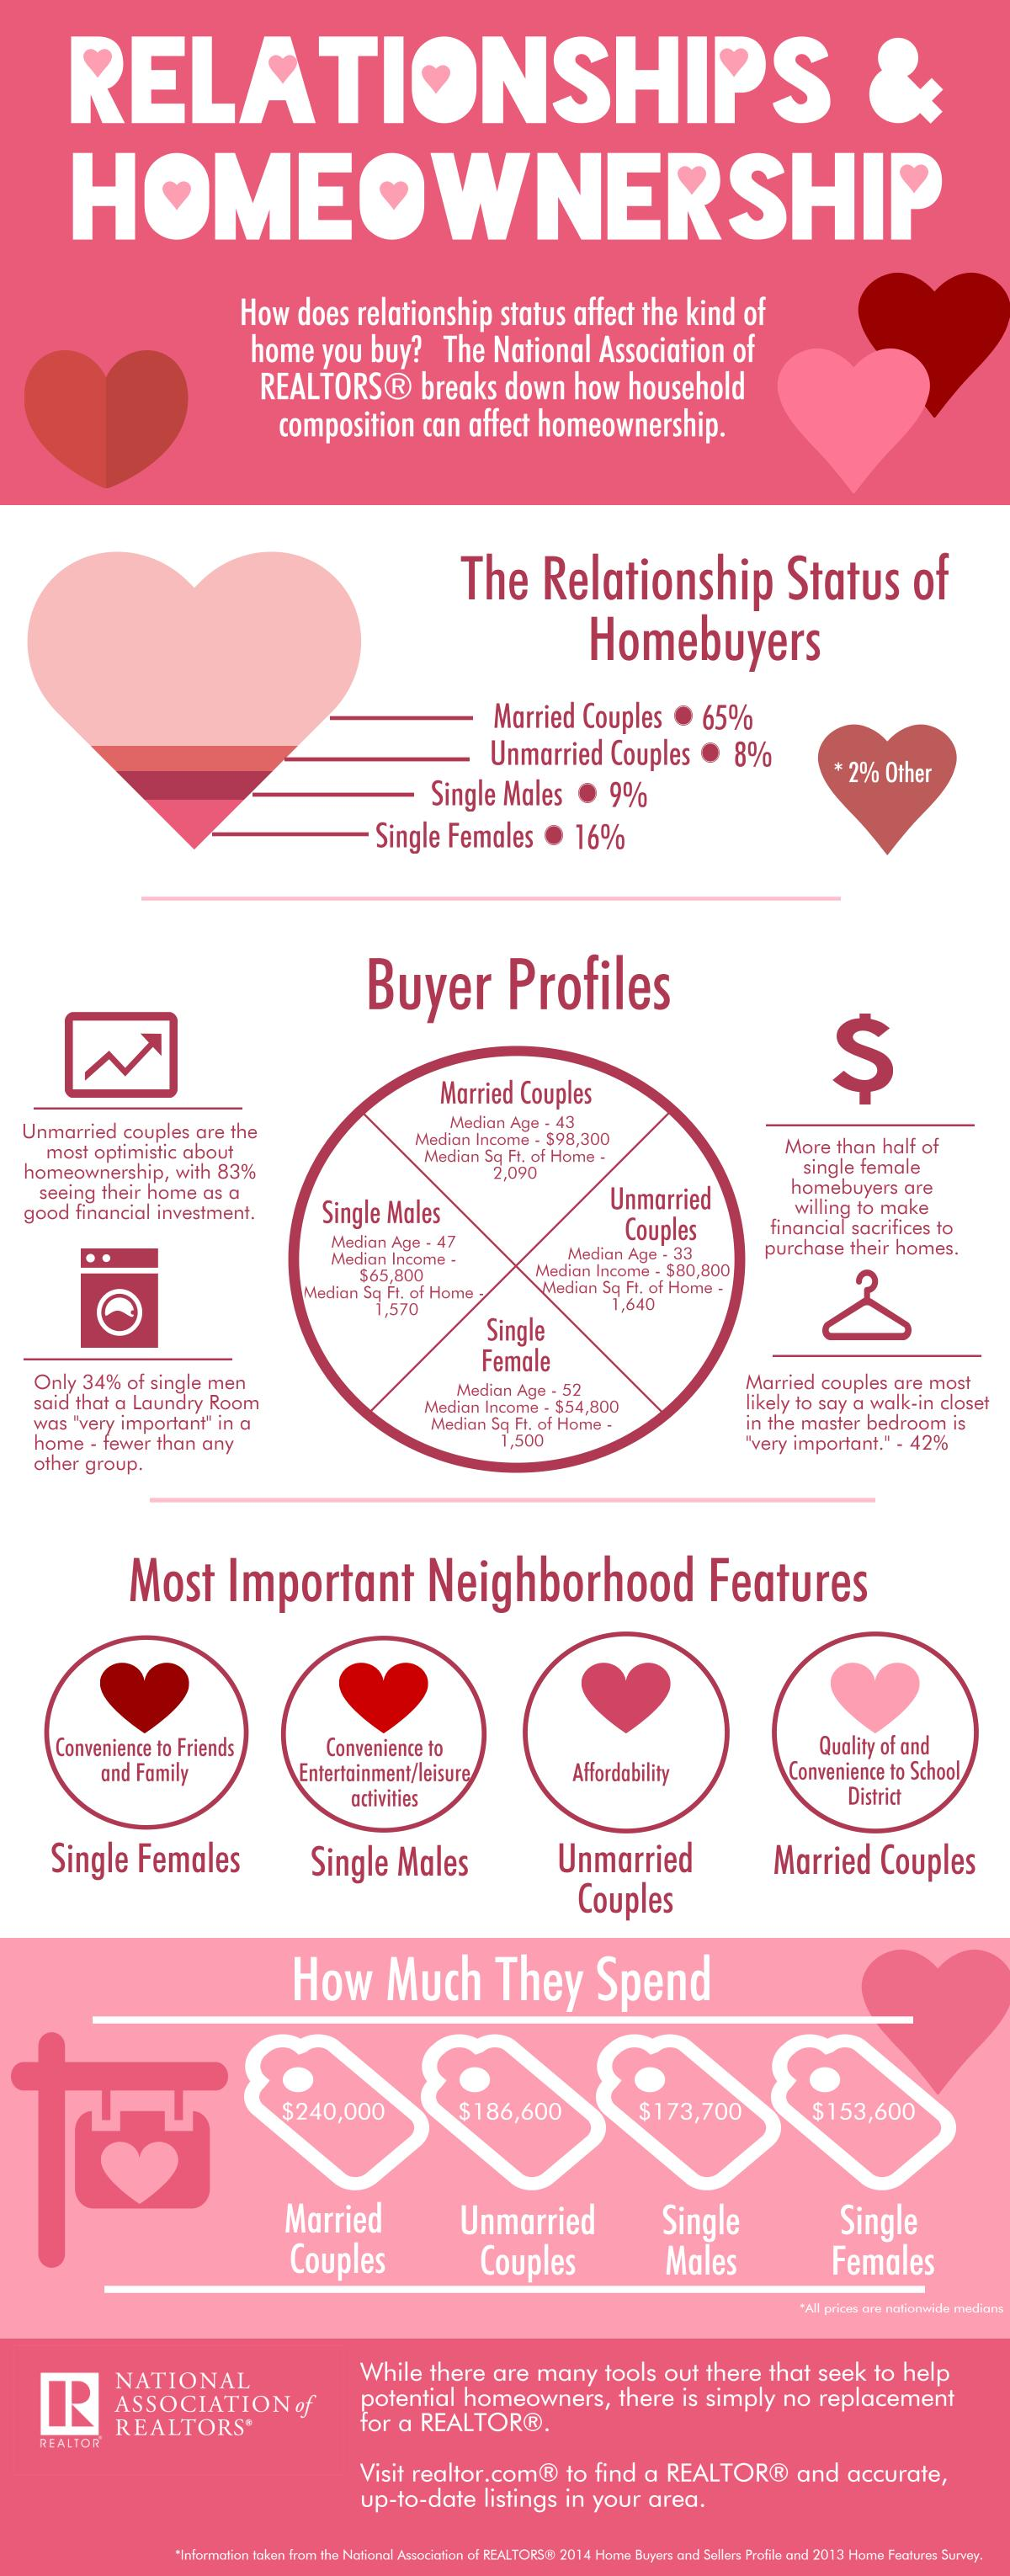 infographic-relationships-and-homeownership-02-09-2015